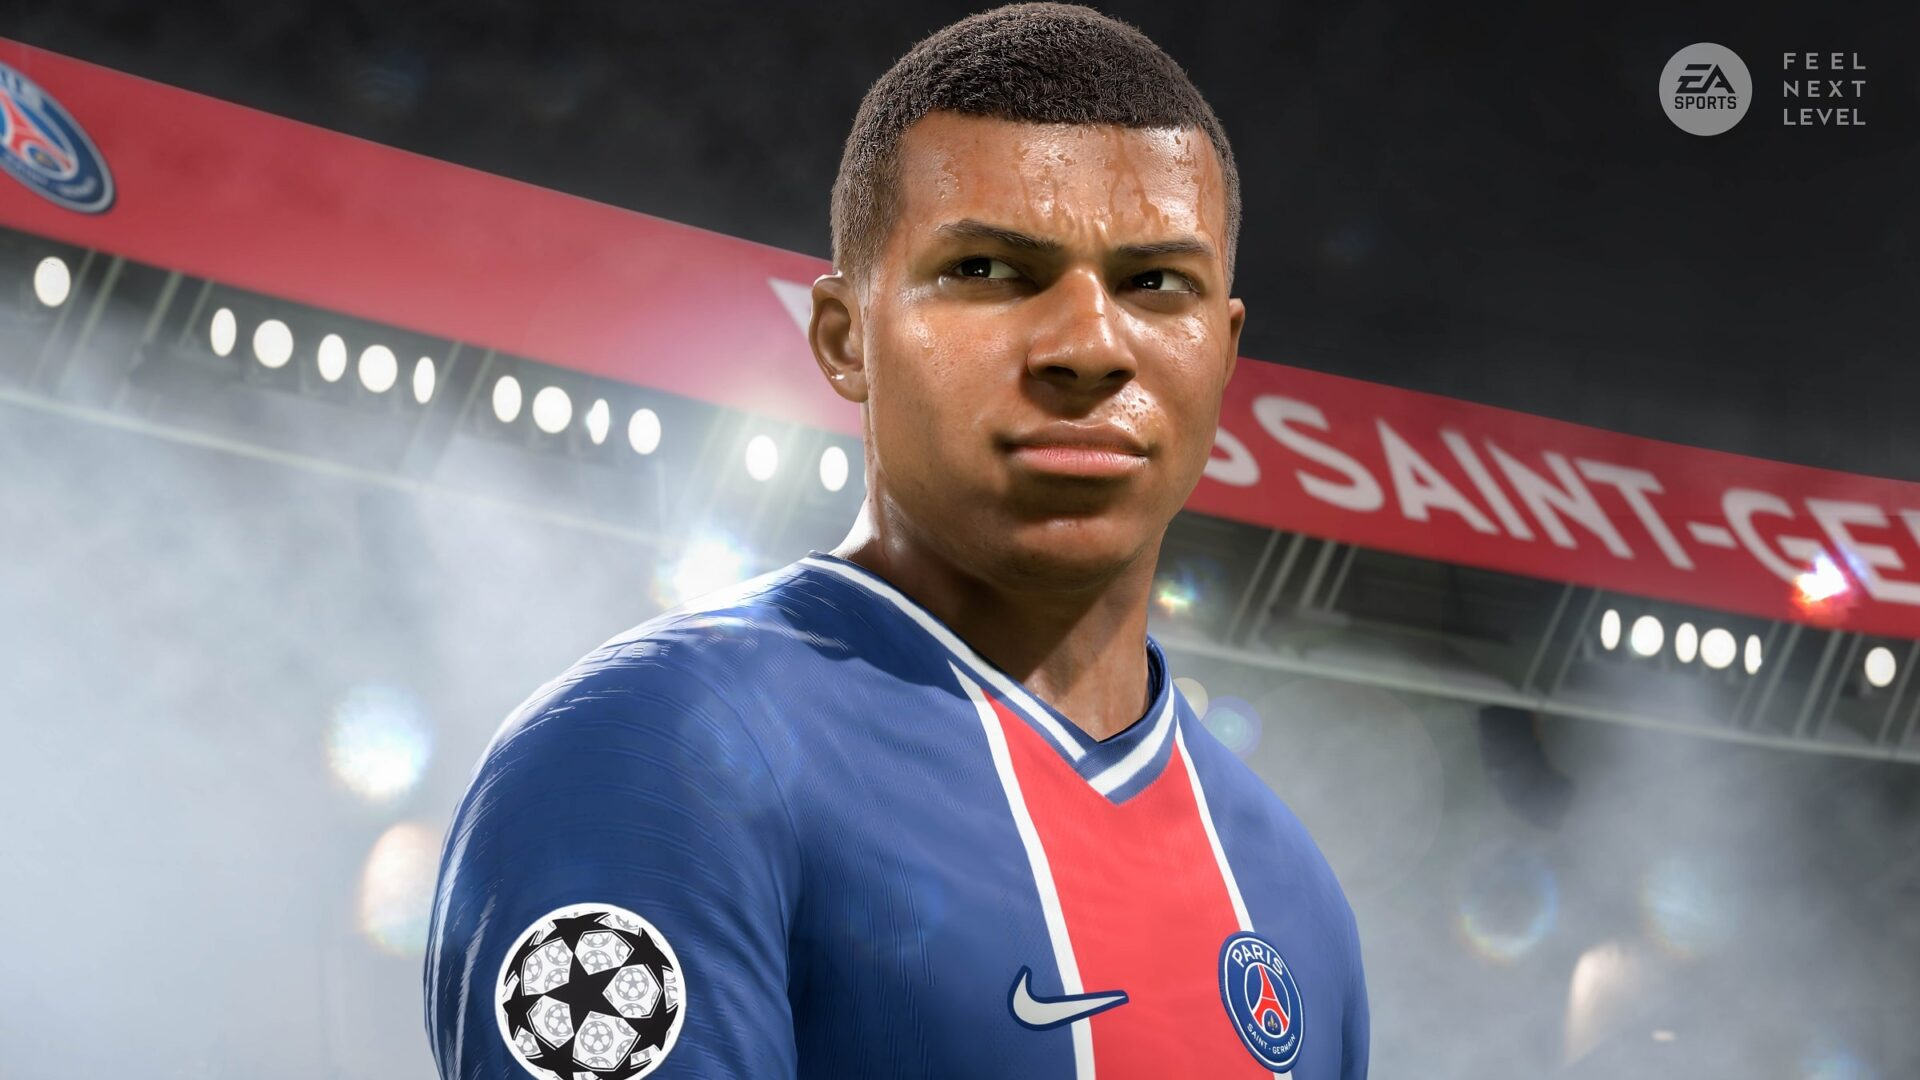 fifa 22 mbappe crying